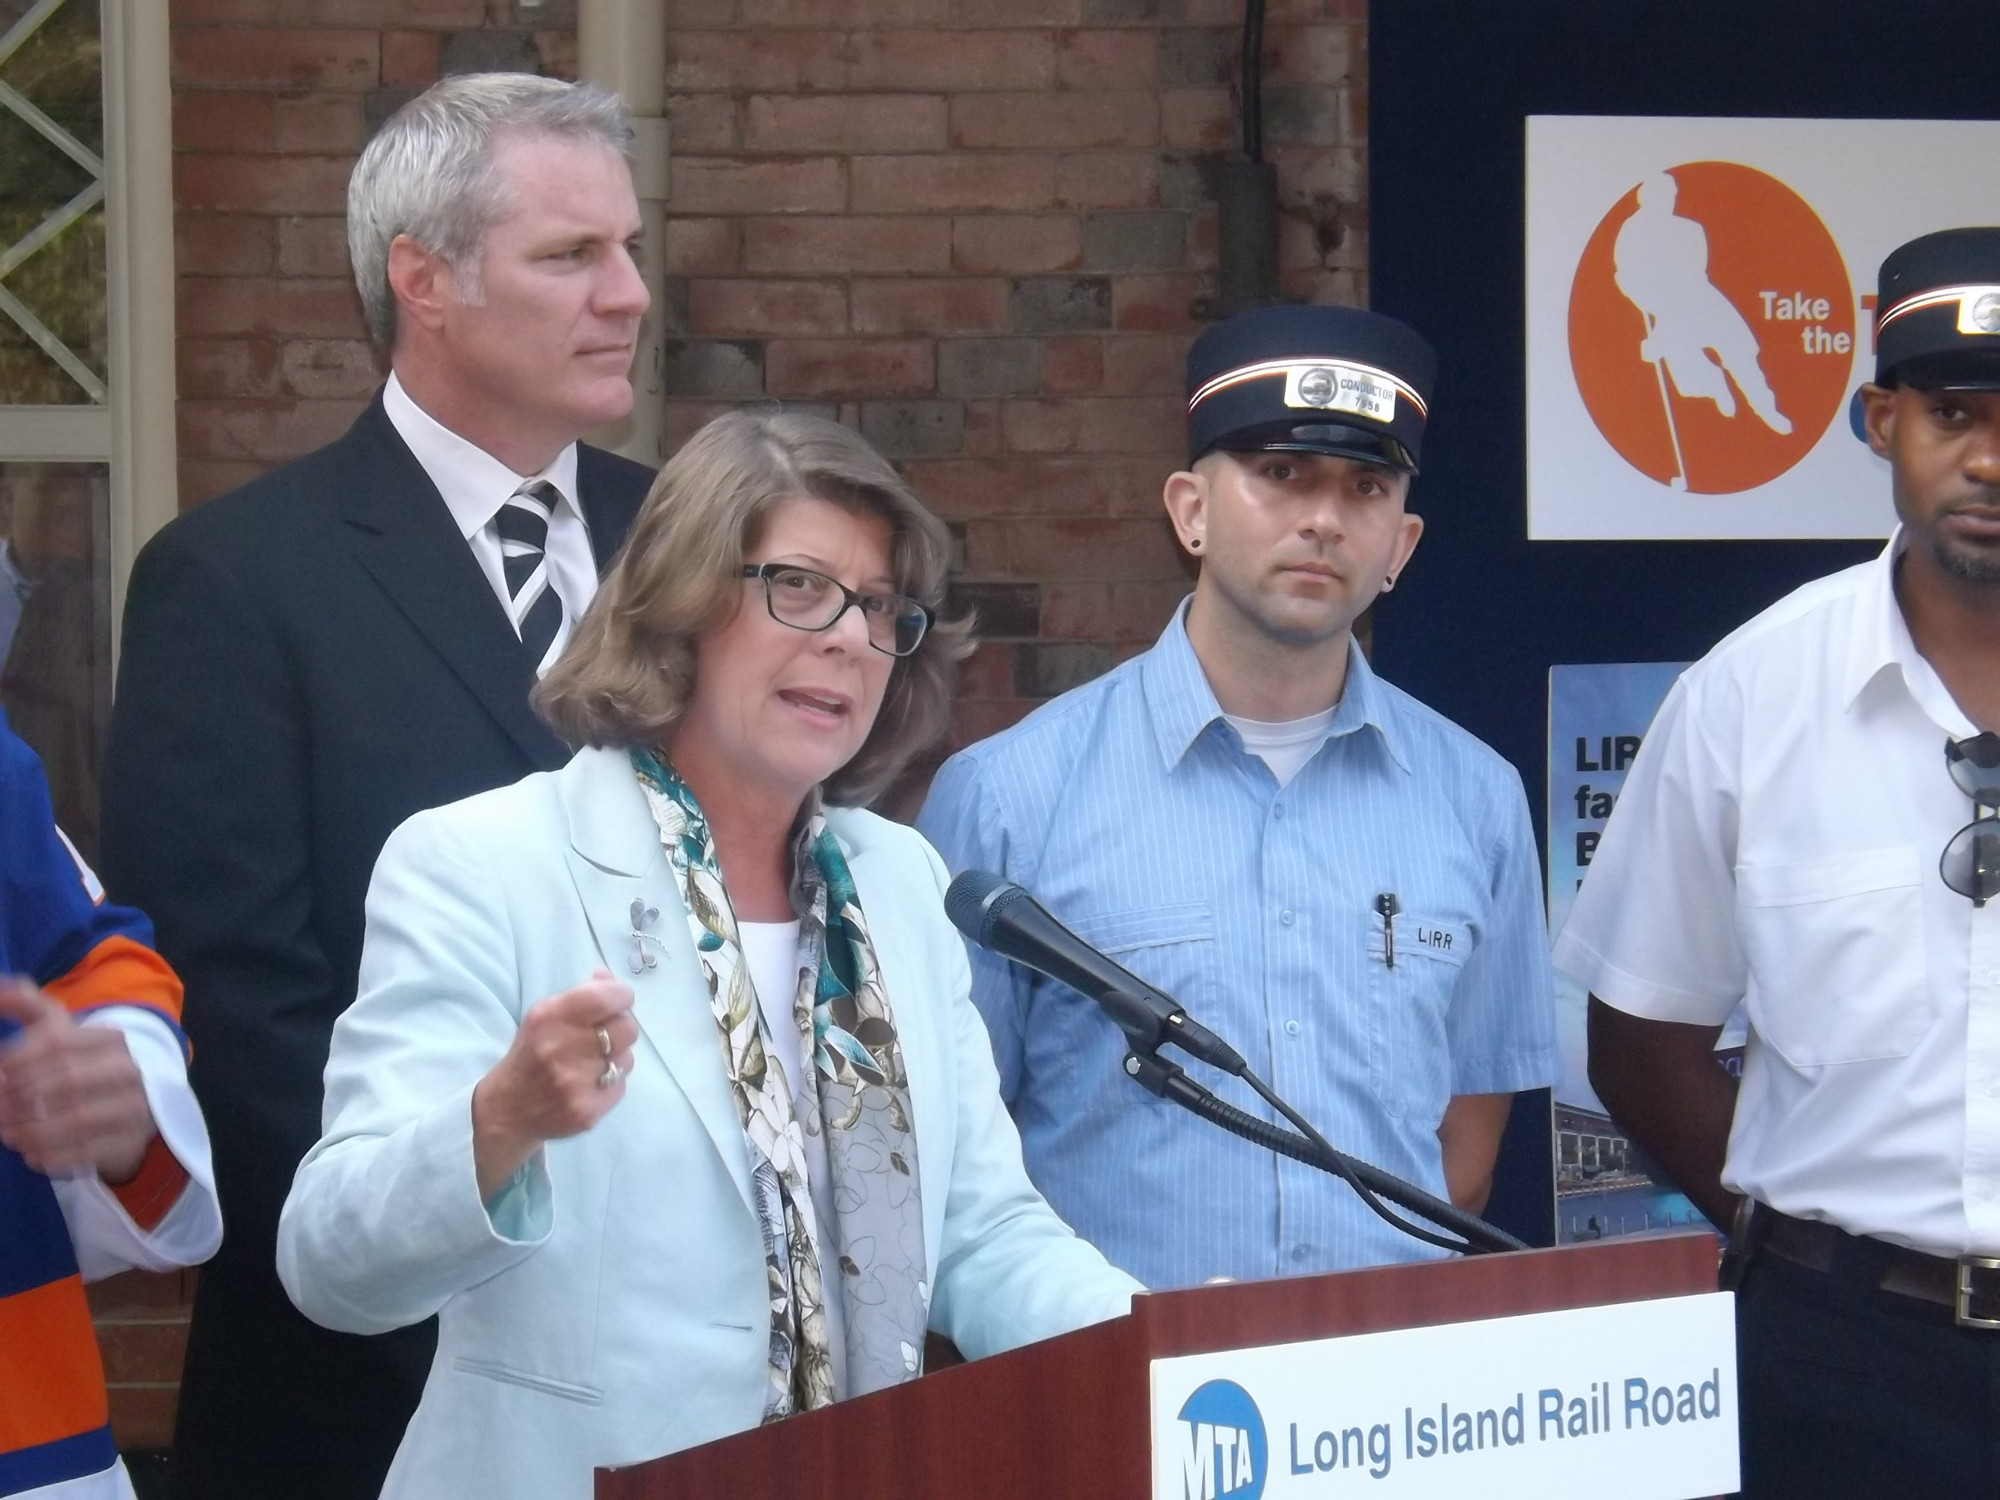 Helena Williams, president of the Long Island Rail Road, welcomed the Islanders to the LIRR station in Garden City before the team took the train into Brooklyn.